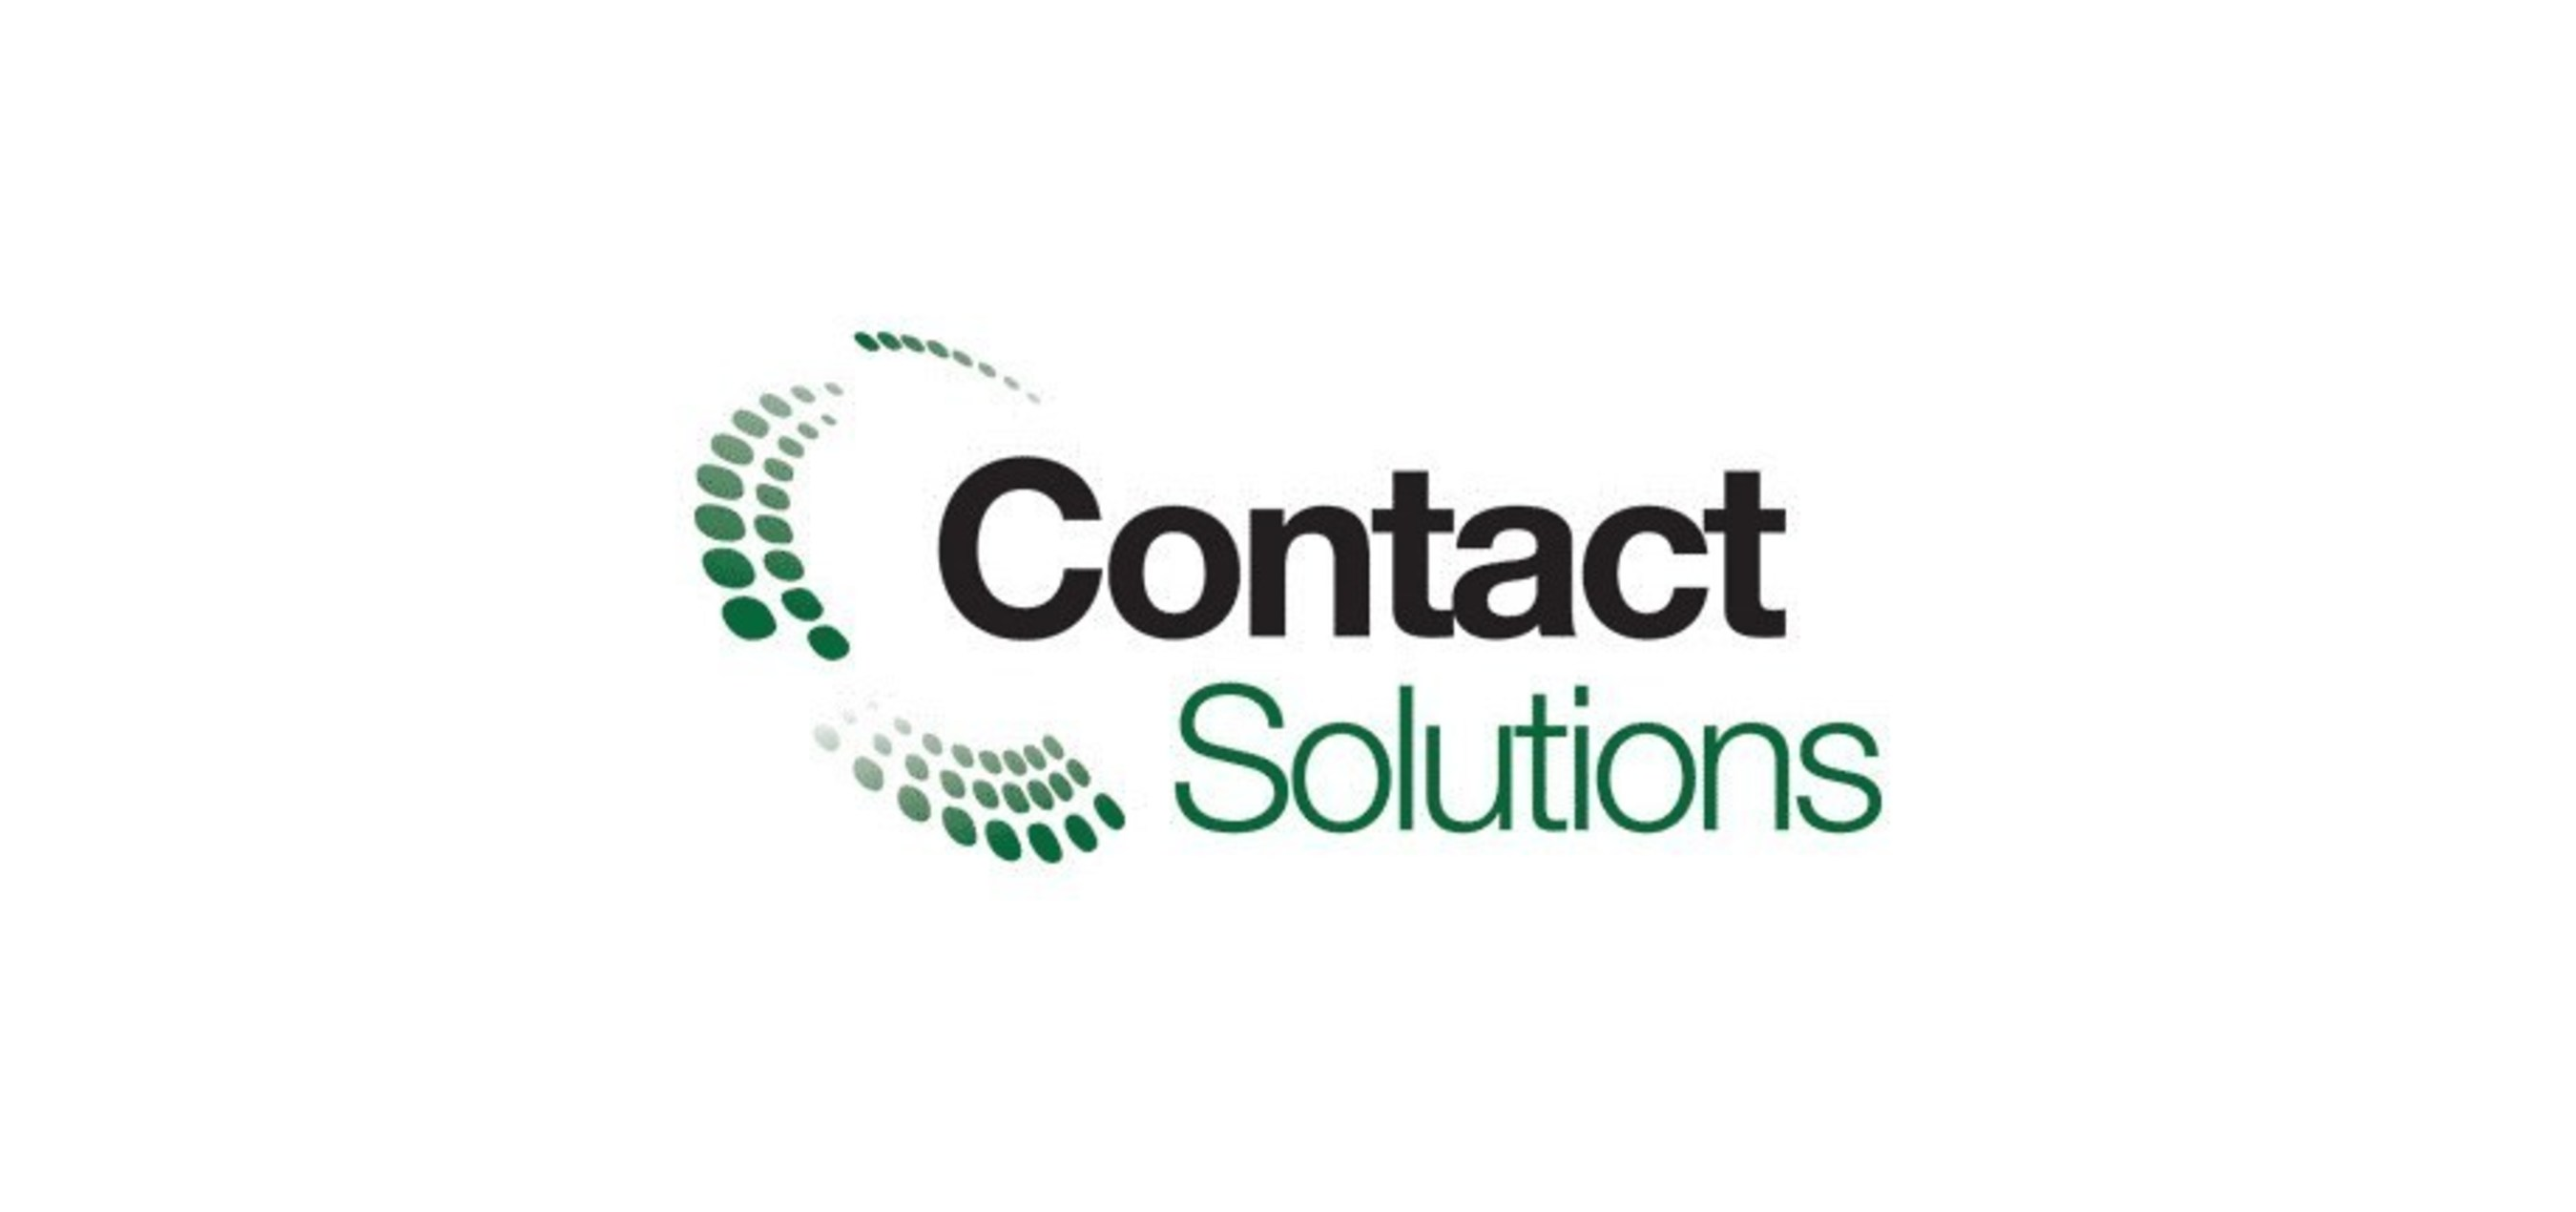 Contact Solutions' Adaptive Fraud Prevention Solution